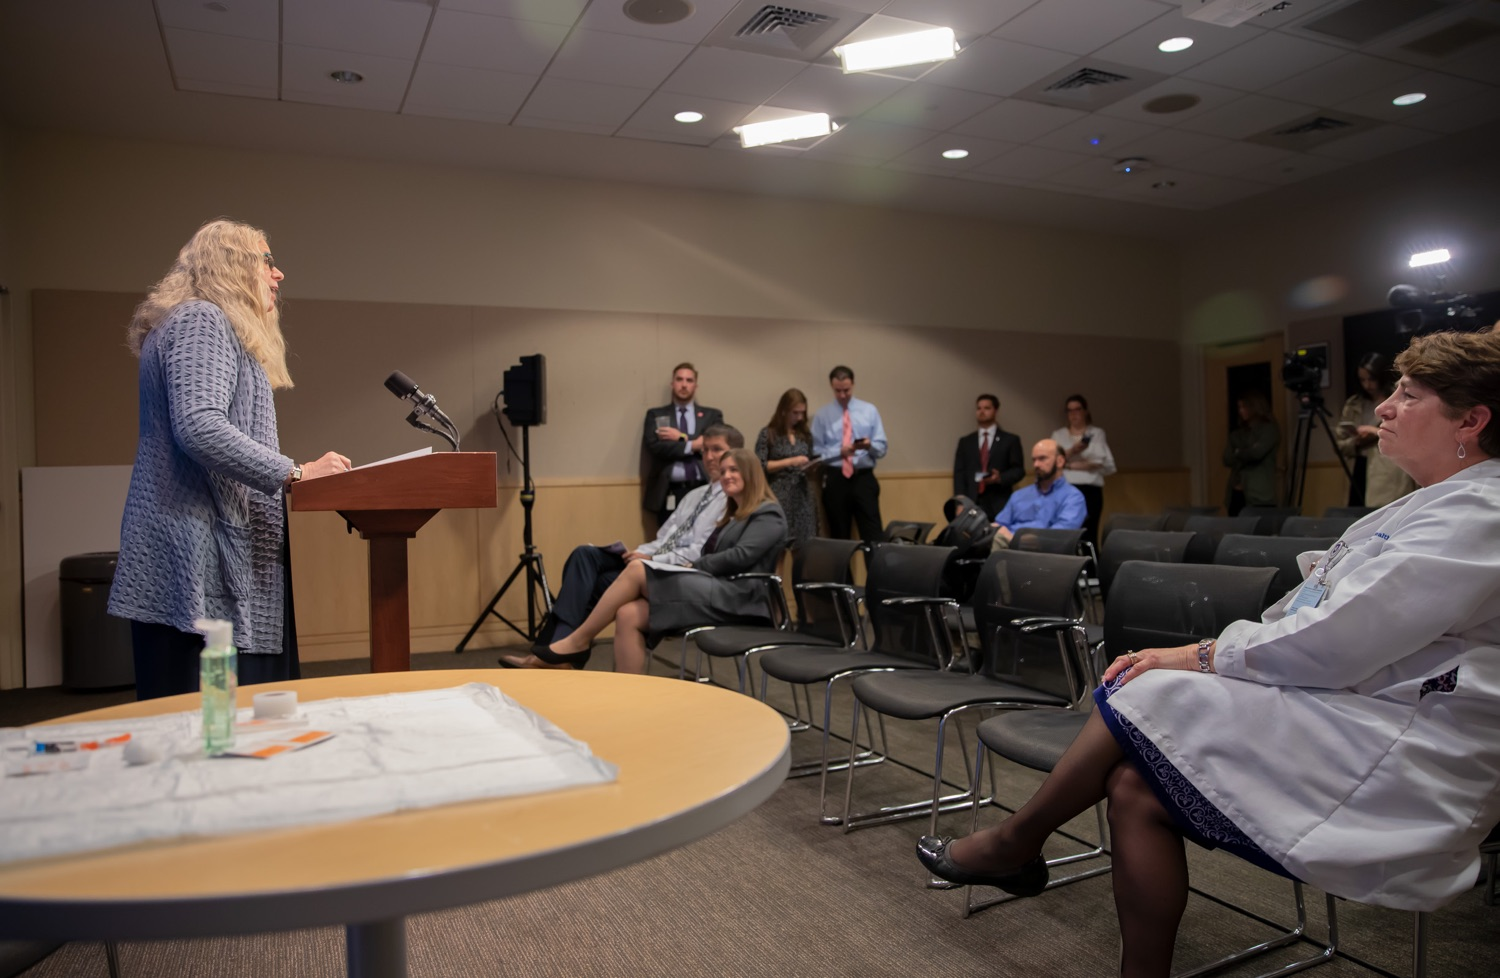 "<a href=""https://filesource.wostreaming.net/commonwealthofpa/photo/17471_DOH_FluSeason_AG_04.jpg"" target=""_blank"">⇣ Download Photo<br></a>Harrisburg, PA.  At an event at the Penn State Health Milton S. Hershey Medical Center today, the Department of Health reminded residents that it is time to get their flu vaccine, as flu season officially starts this month and runs until May. Secretary of Health Dr. Rachel Levine encouraged residents to get their flu vaccine before the end of October and offered important tips to stay healthy during flu season.  October 8, 2019."